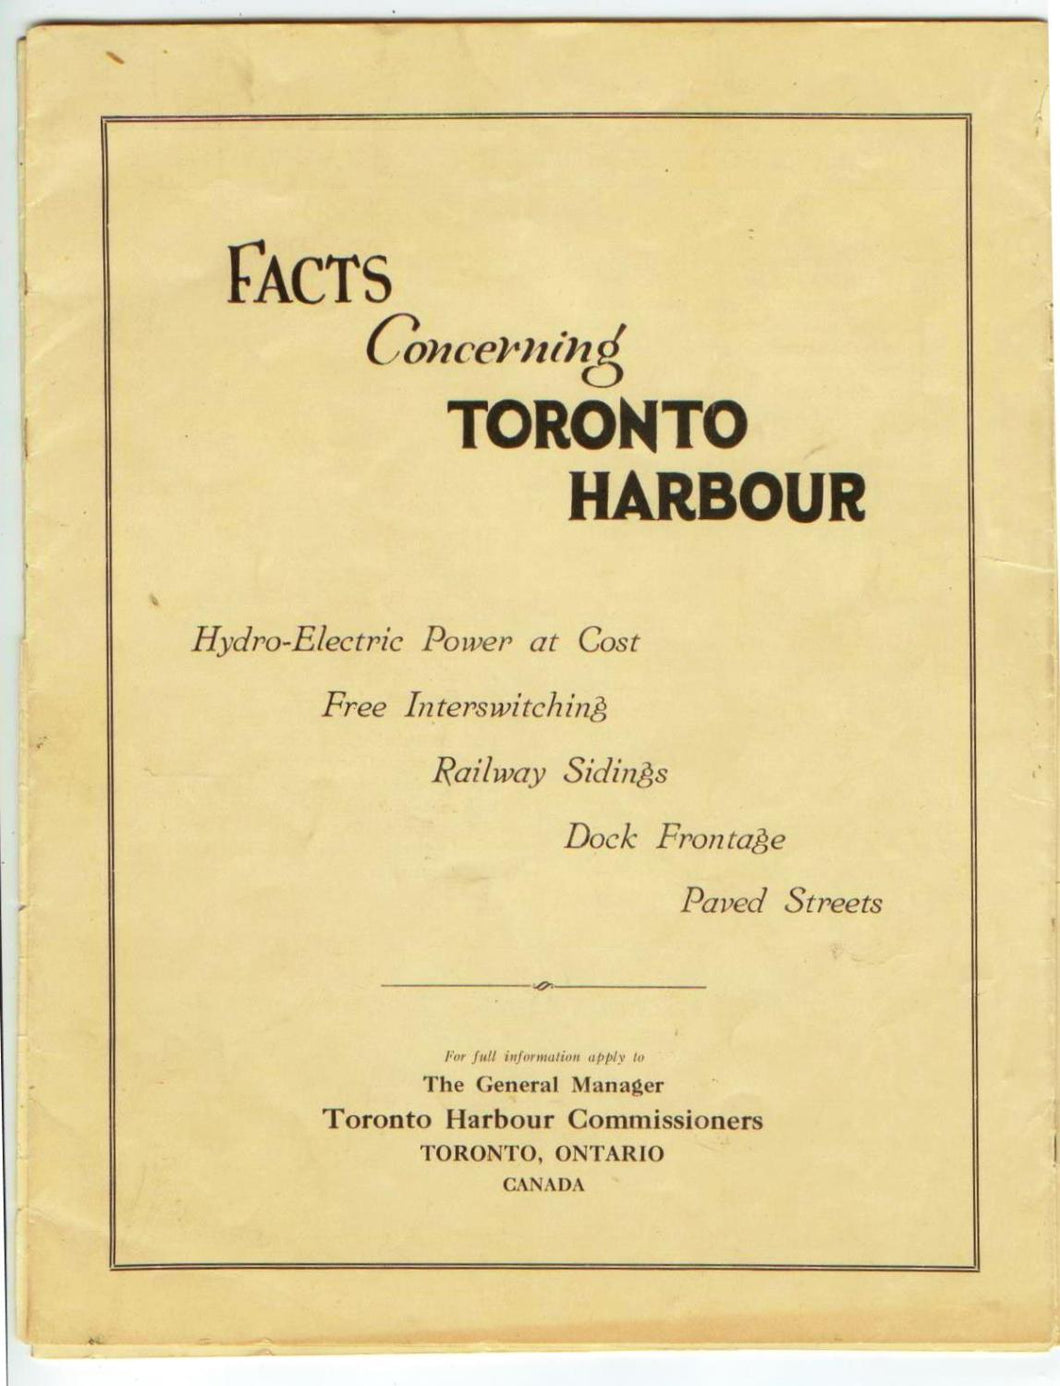 Facts Concerning Toronto Harbour